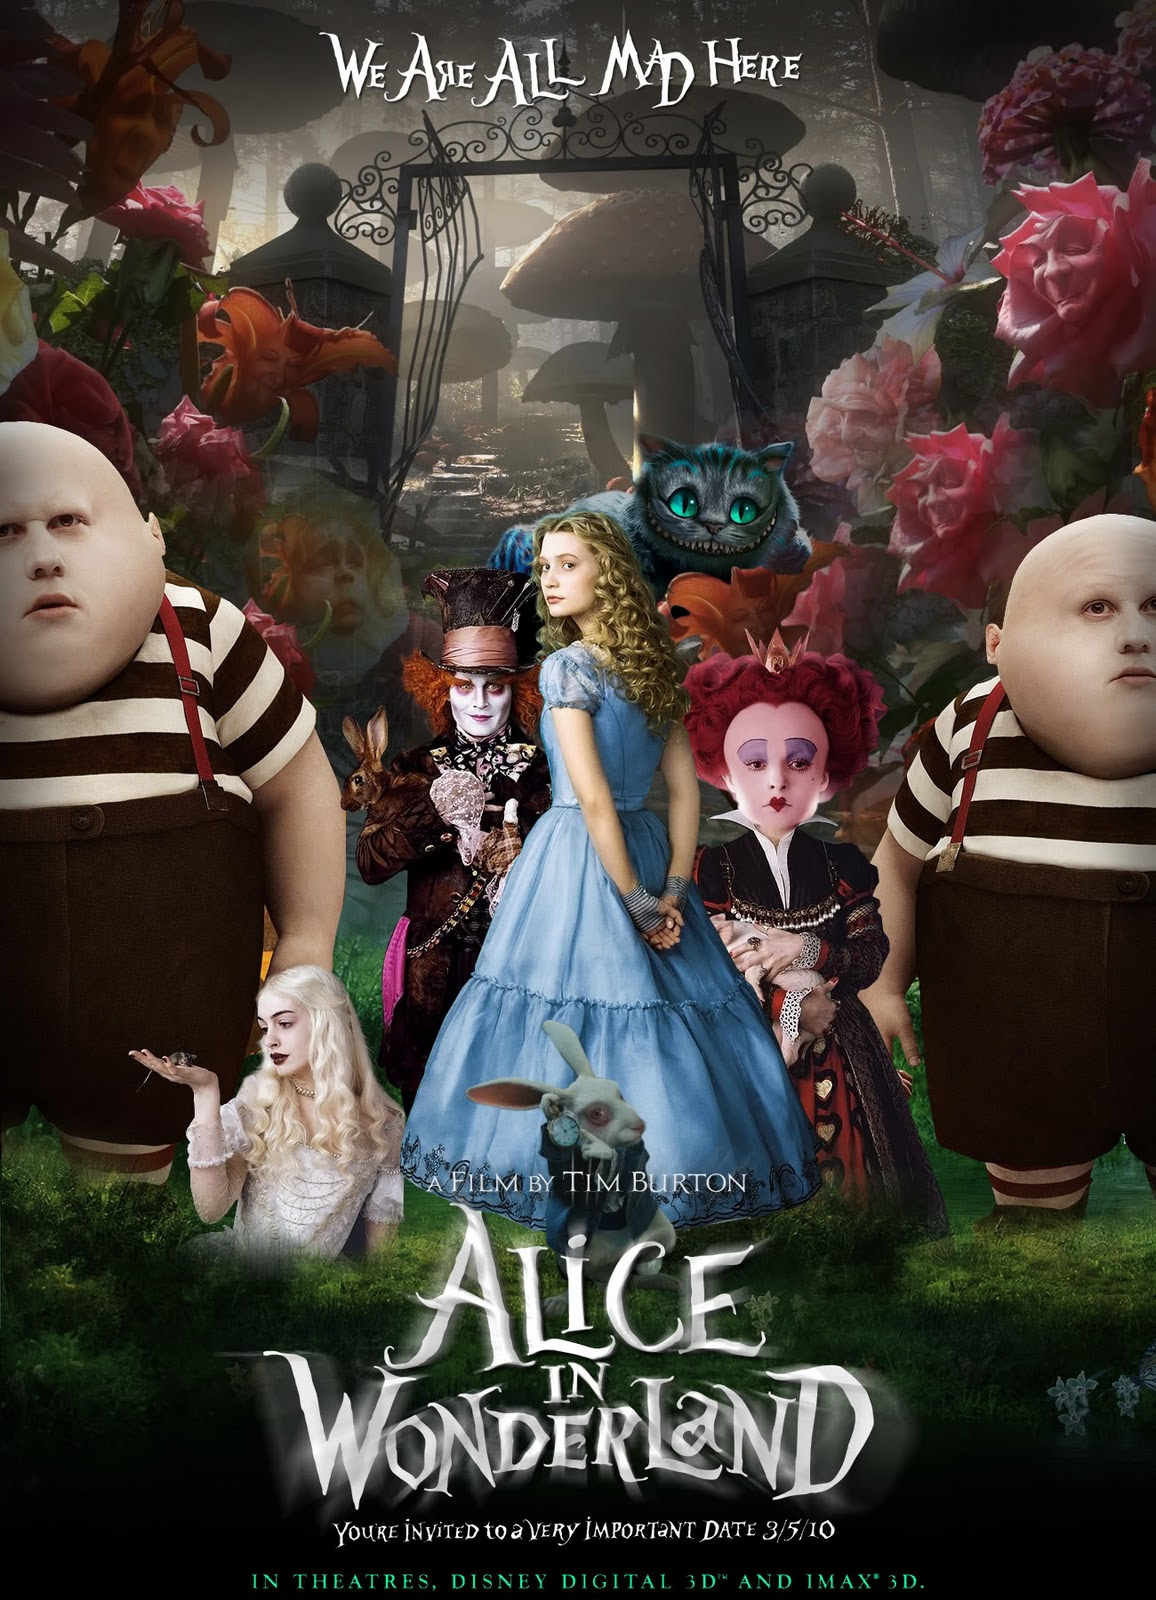 http://4.bp.blogspot.com/-PJeAoLTTq9E/TV4QSTvaNLI/AAAAAAAABkg/DQFe4ukRW3M/s1600/Alice-in-Wonderland-3D-Movie-Poster-Johnny-Depp.jpg